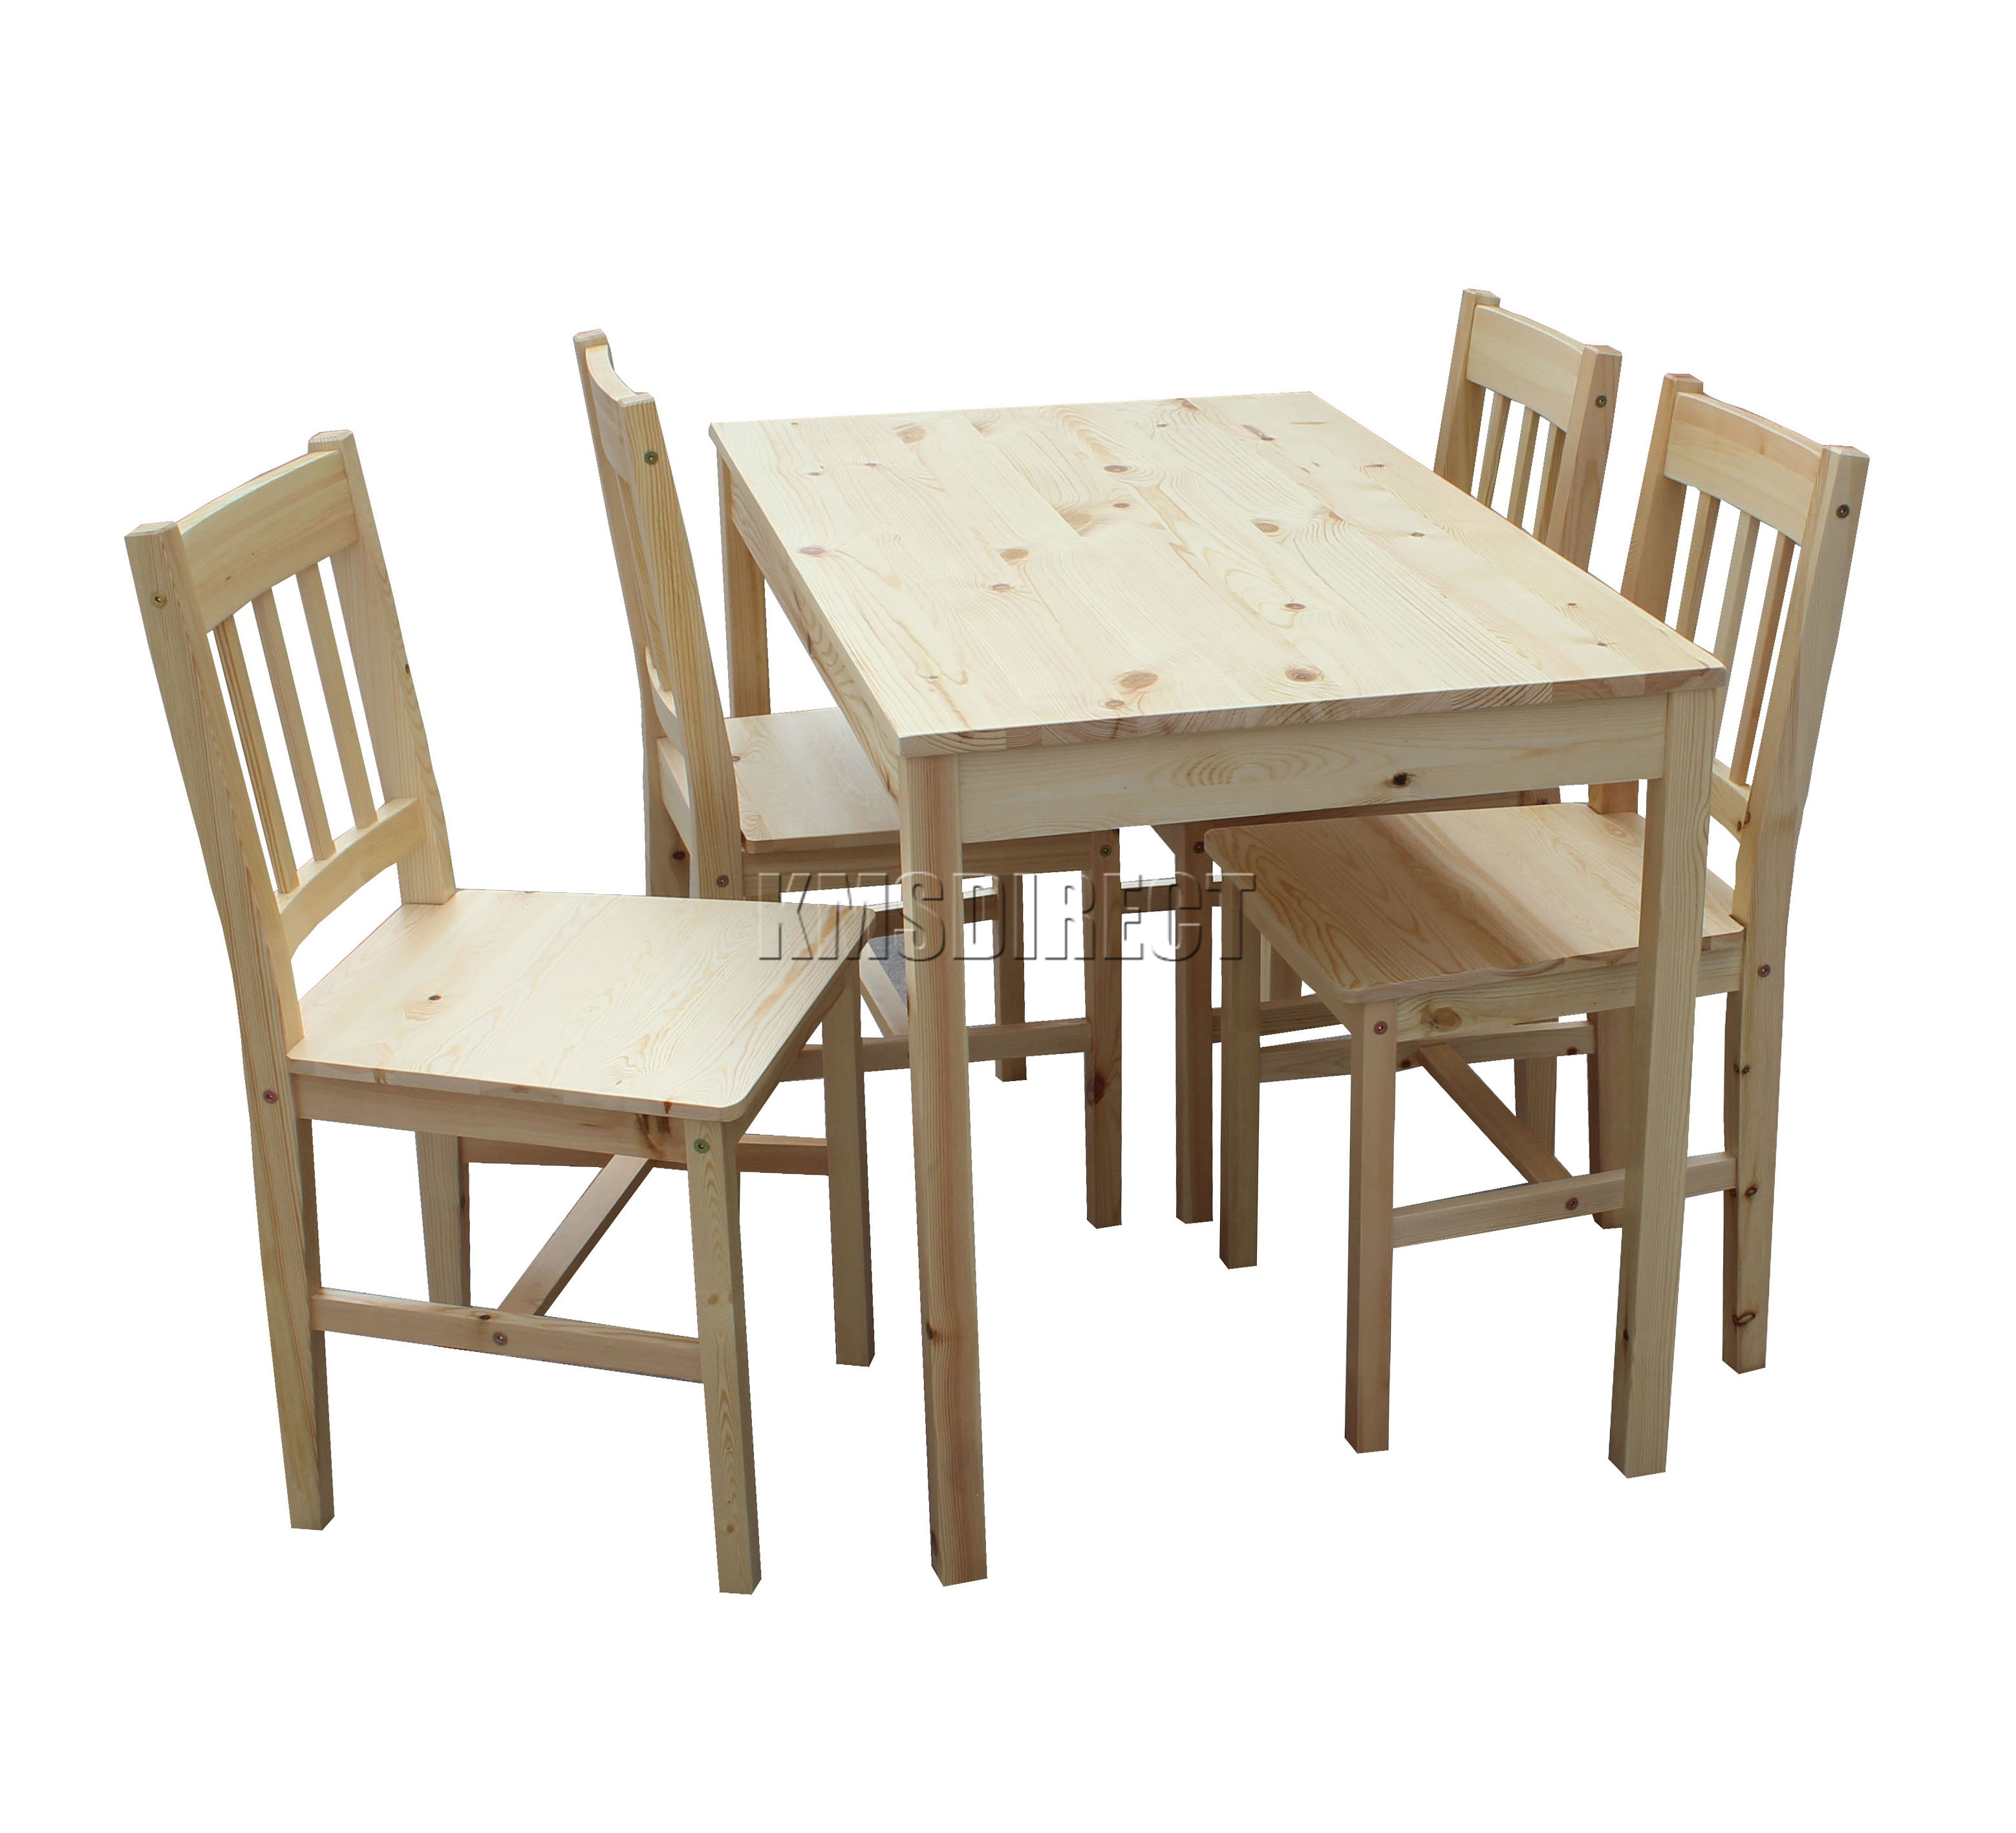 Solid Wood Kitchen Table Sets: WestWood Solid Wooden Dining Table With 4 Chairs Set